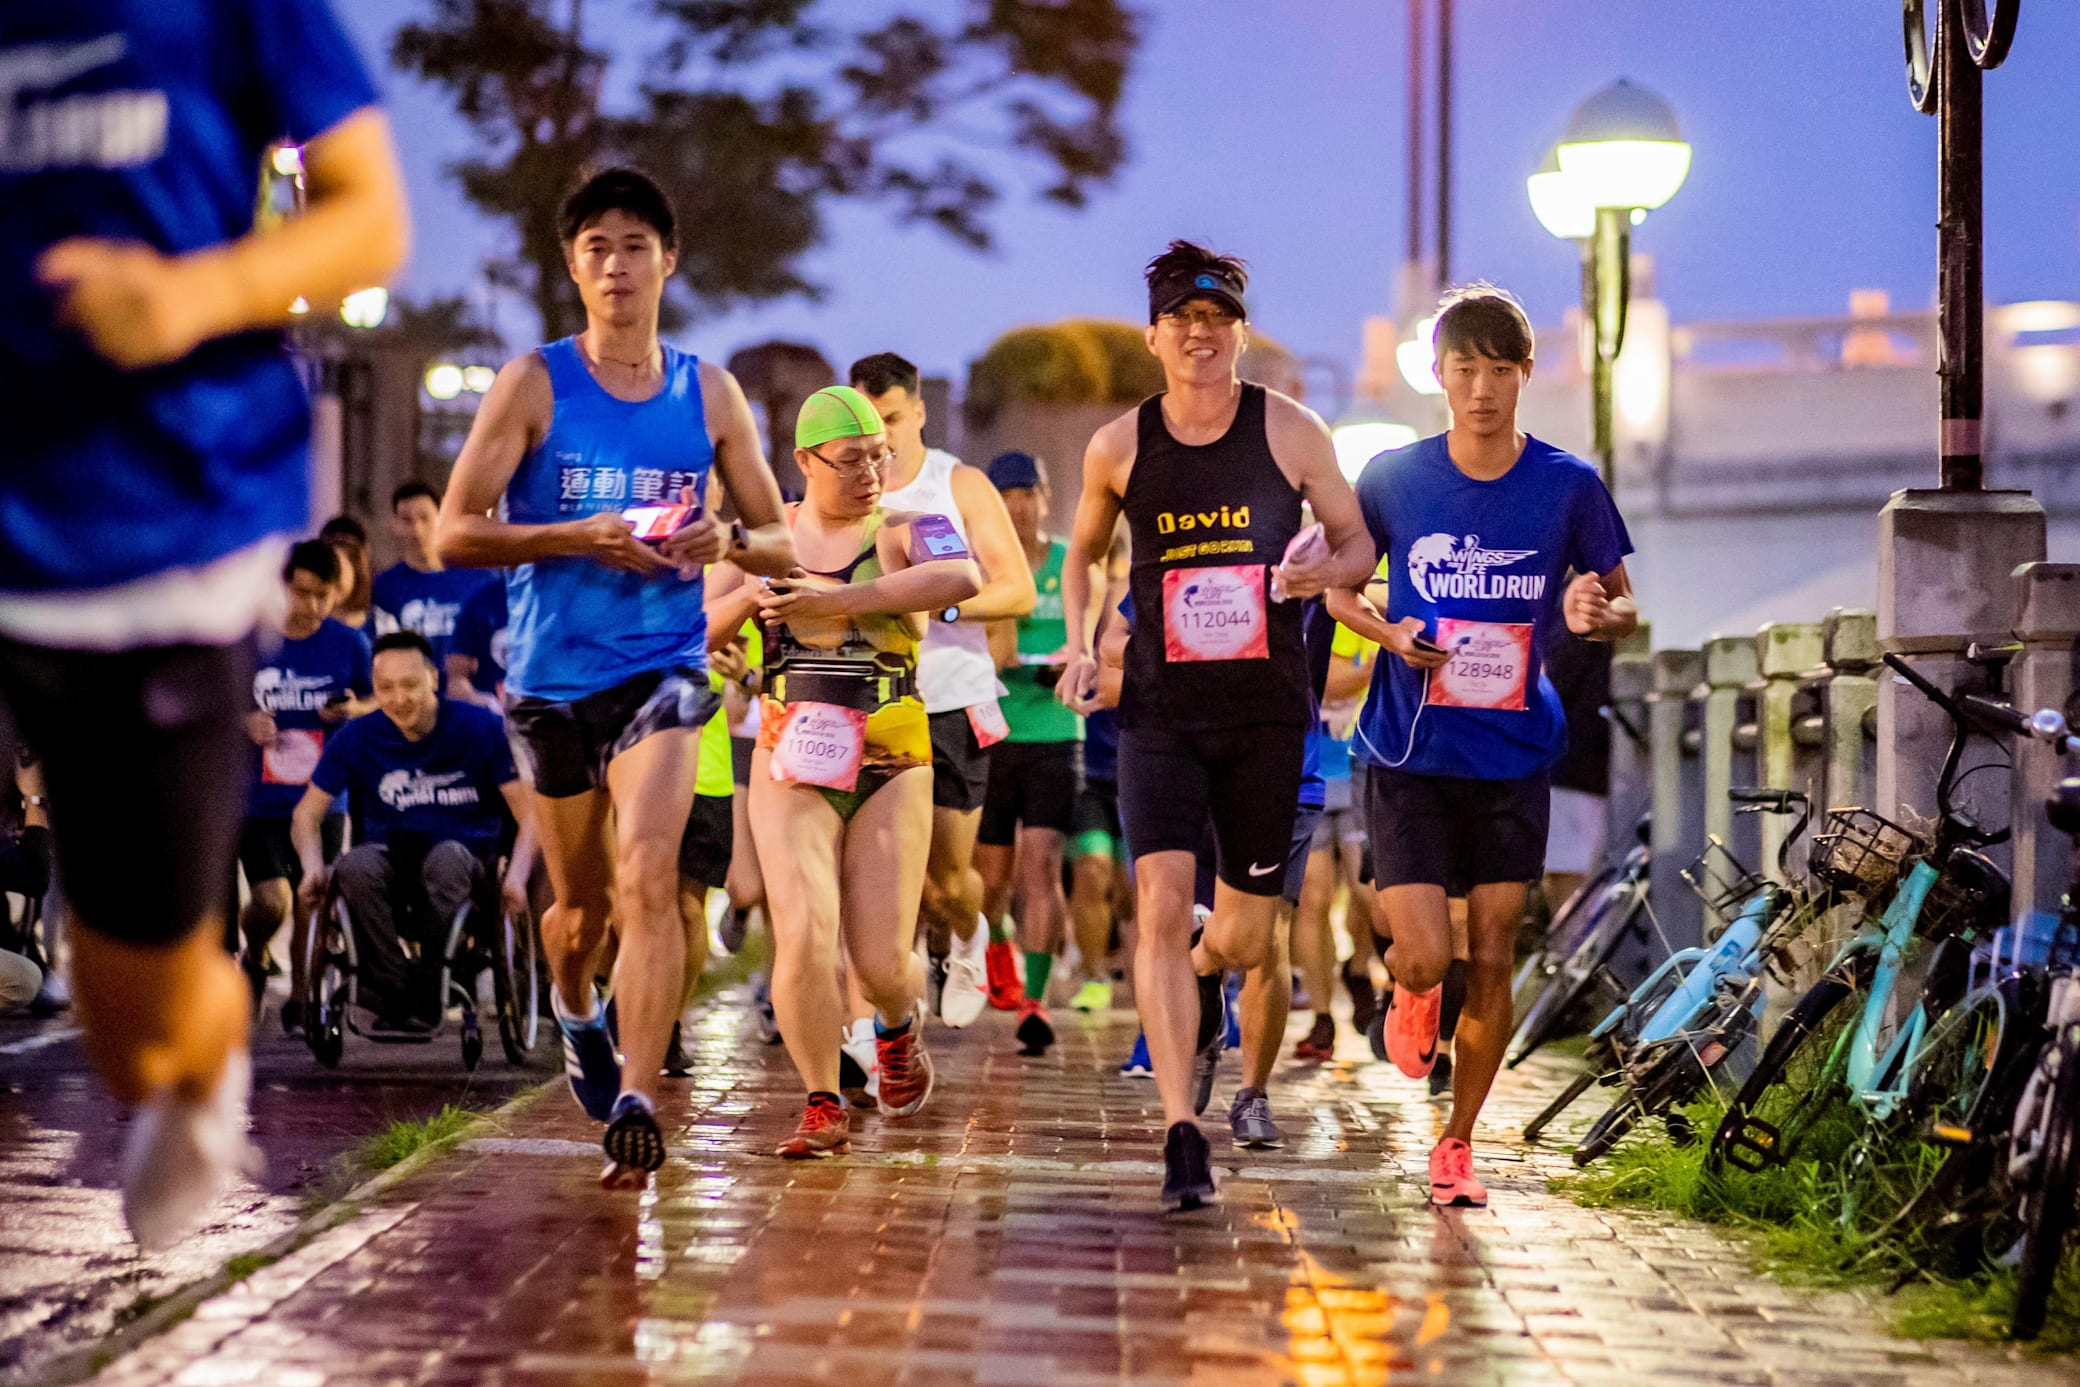 Wings for Life World Run Hong Kong App Run 在沙田城門河兩旁舉行